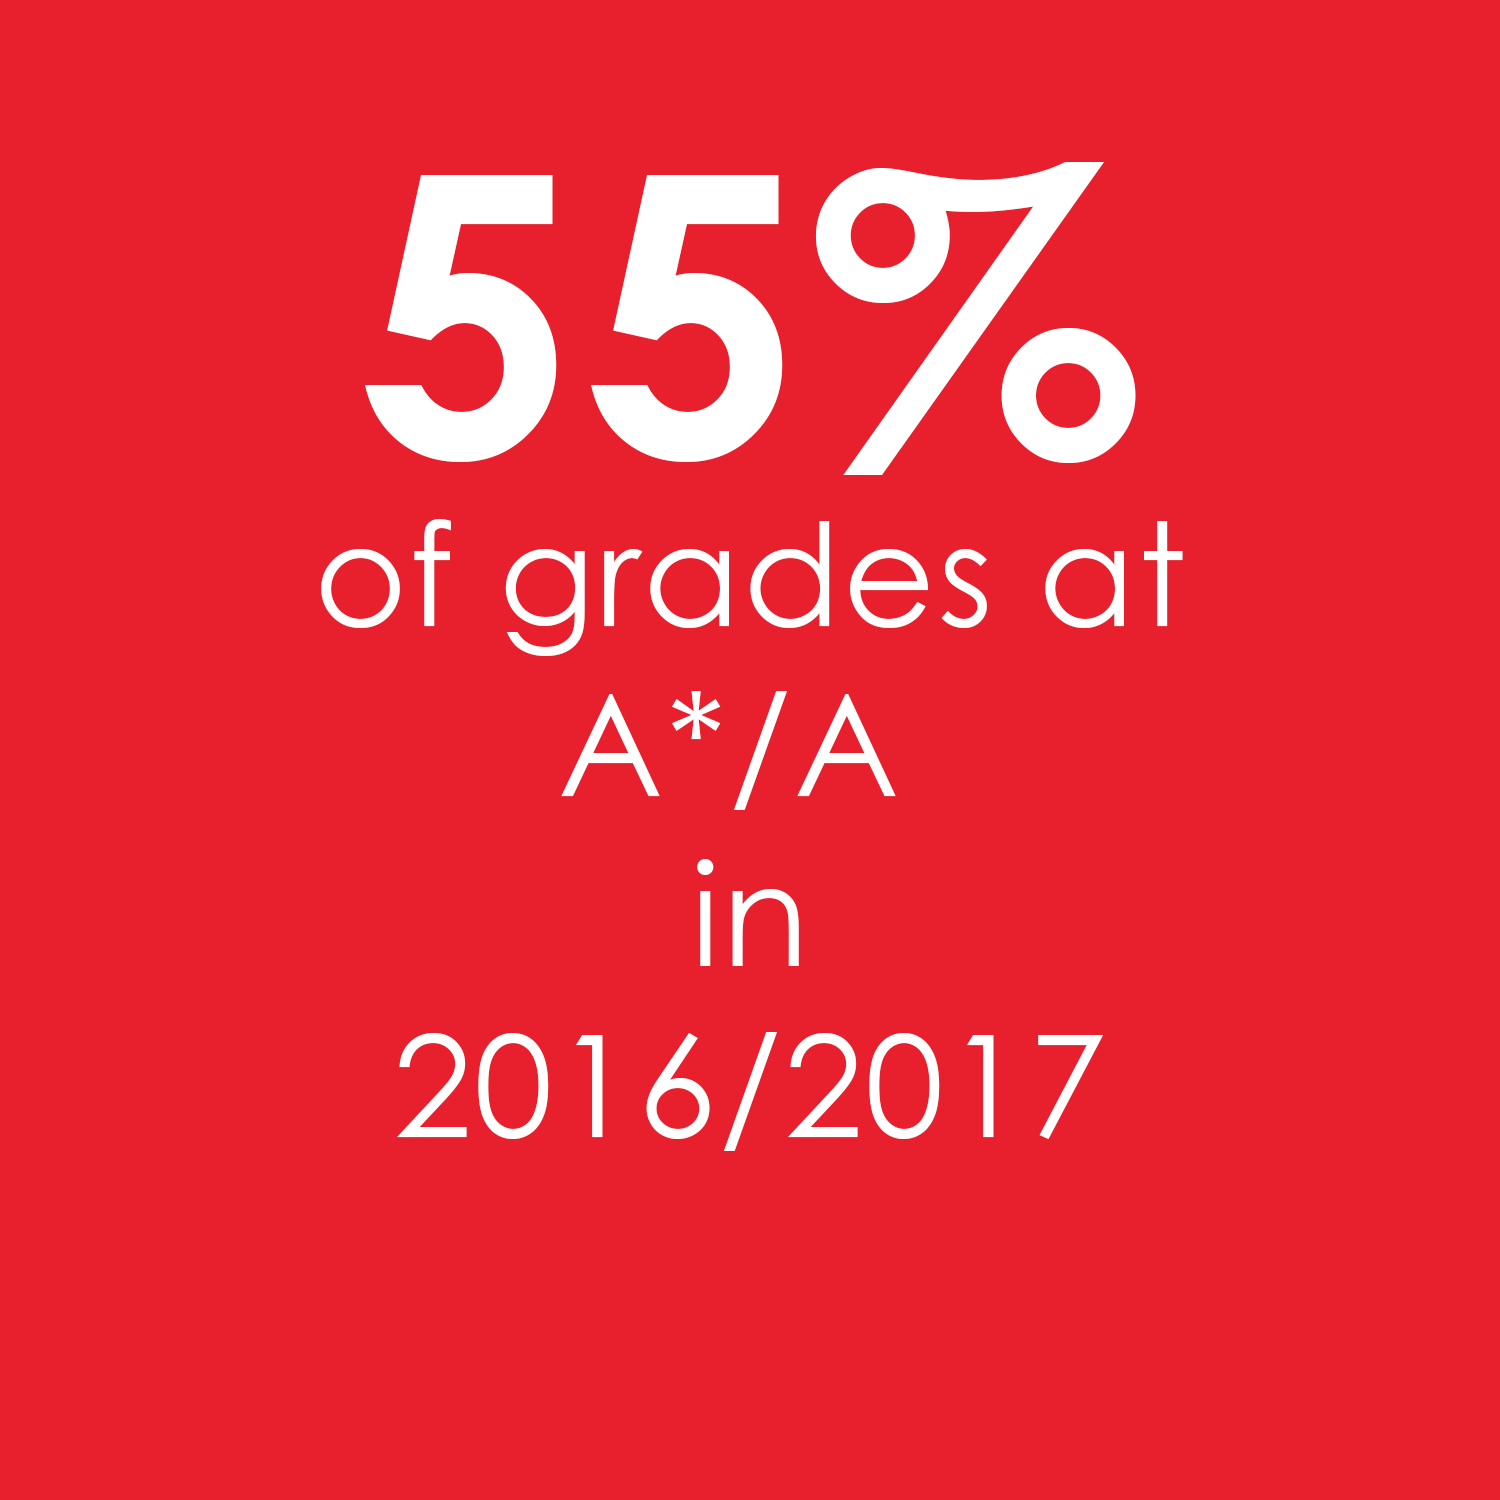 55% of grades at A*/A in 16/17